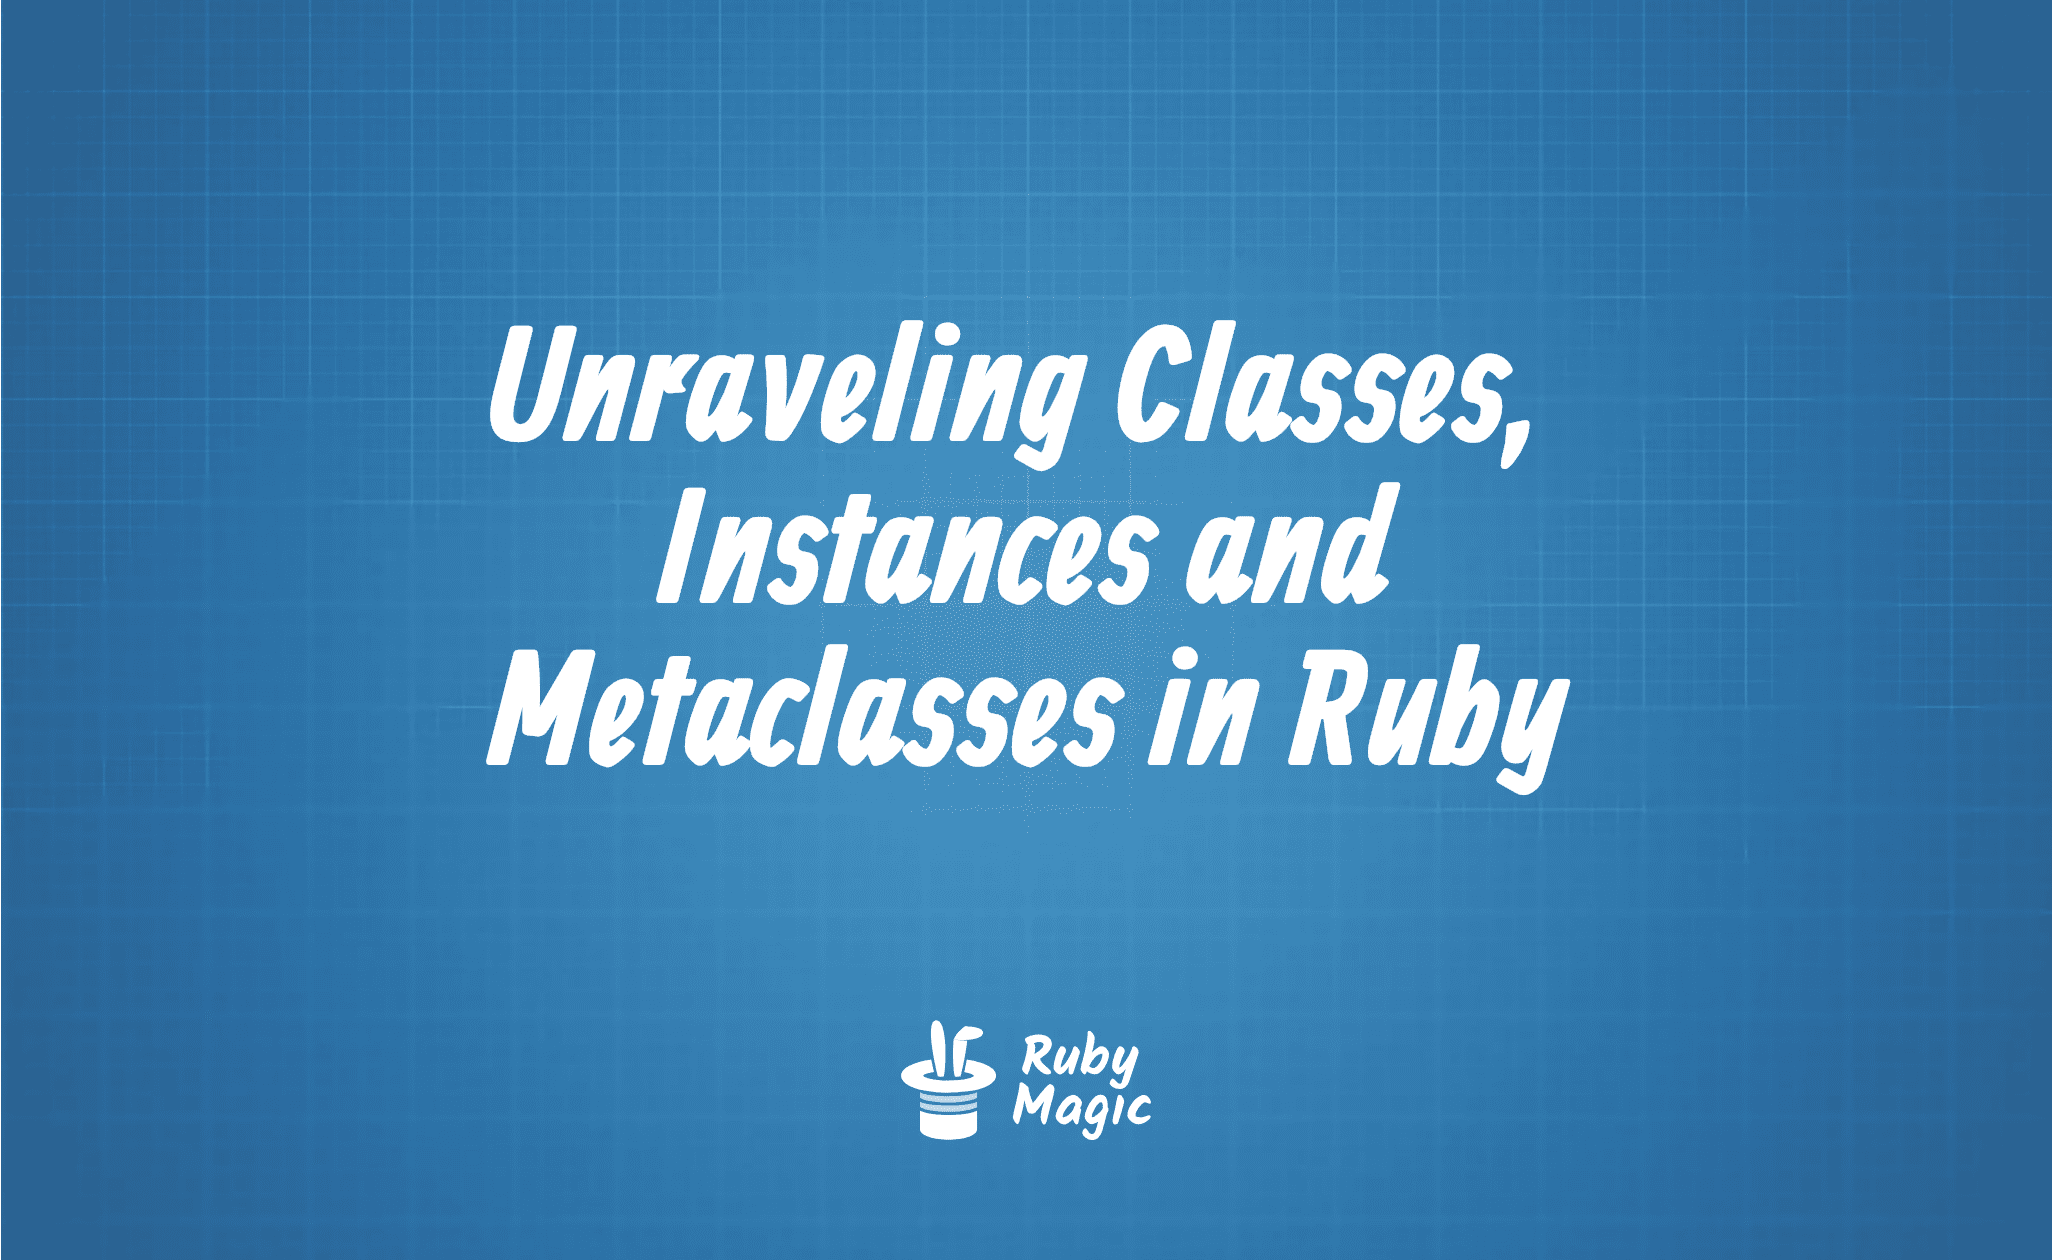 Unraveling Classes, Instances and Metaclasses in Ruby